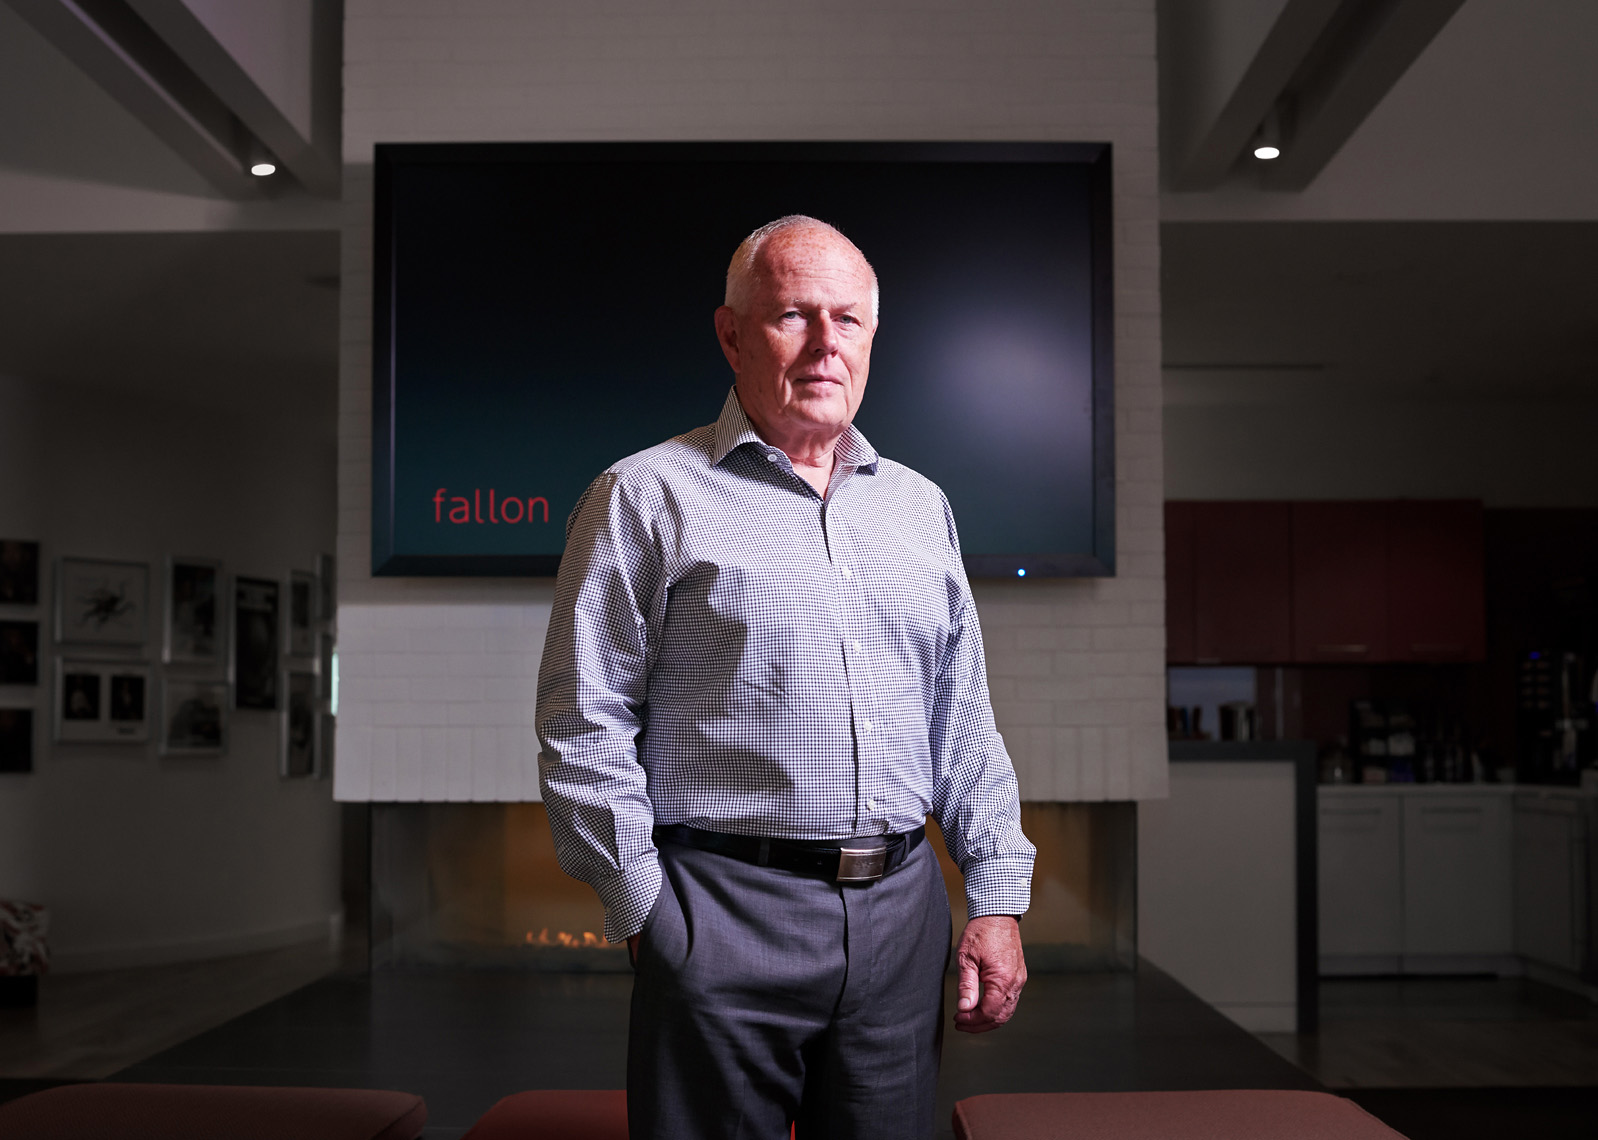 Pat Fallon corporate portrait